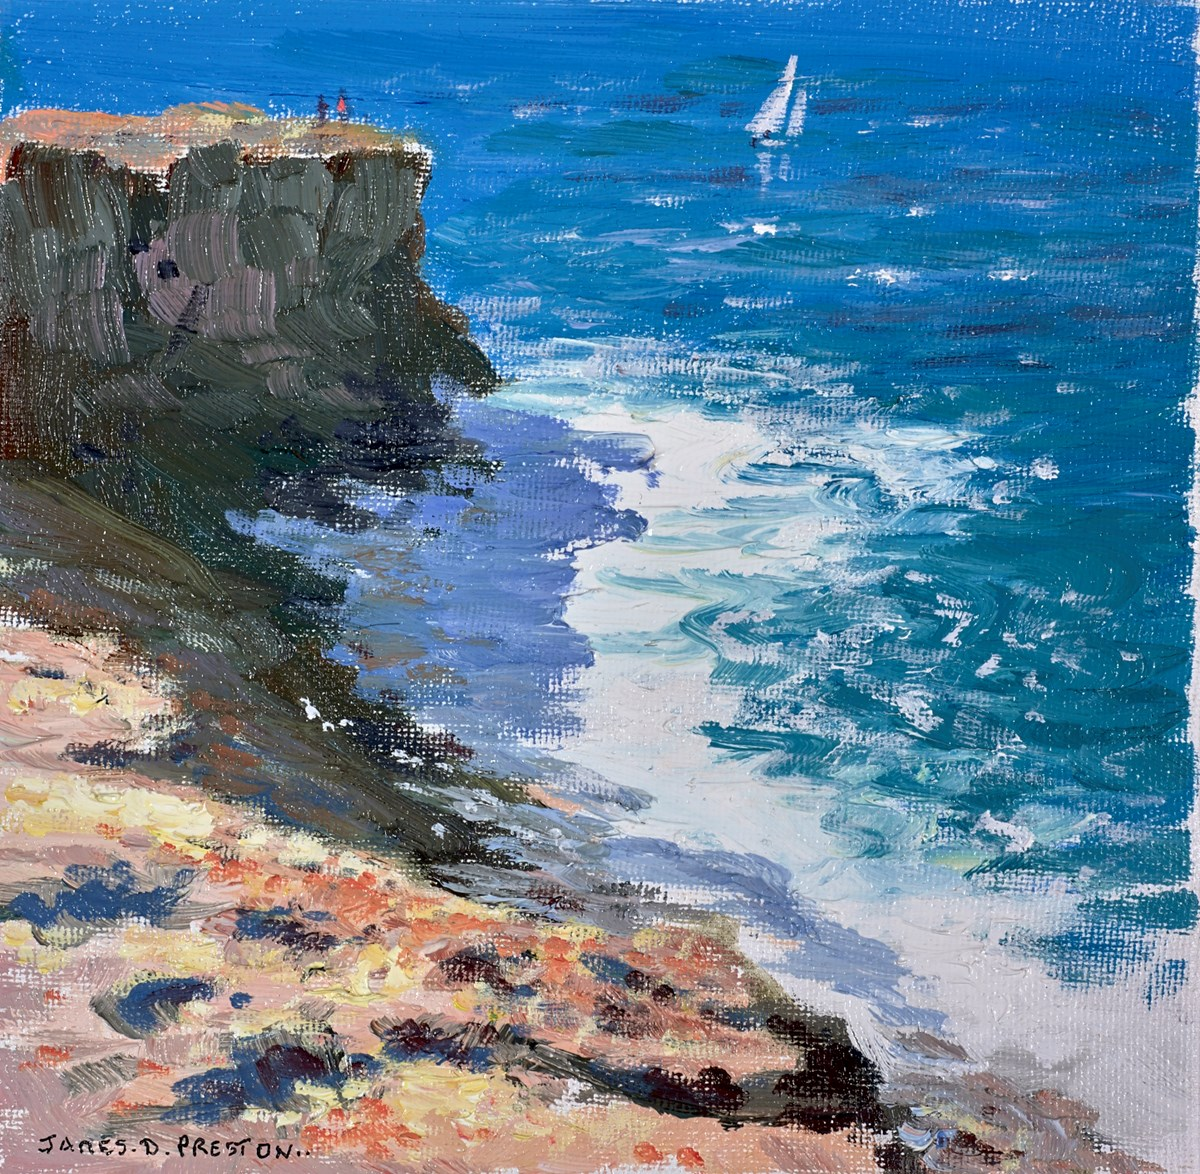 Cliffs (Ibiza) by james preston -  sized 8x8 inches. Available from Whitewall Galleries